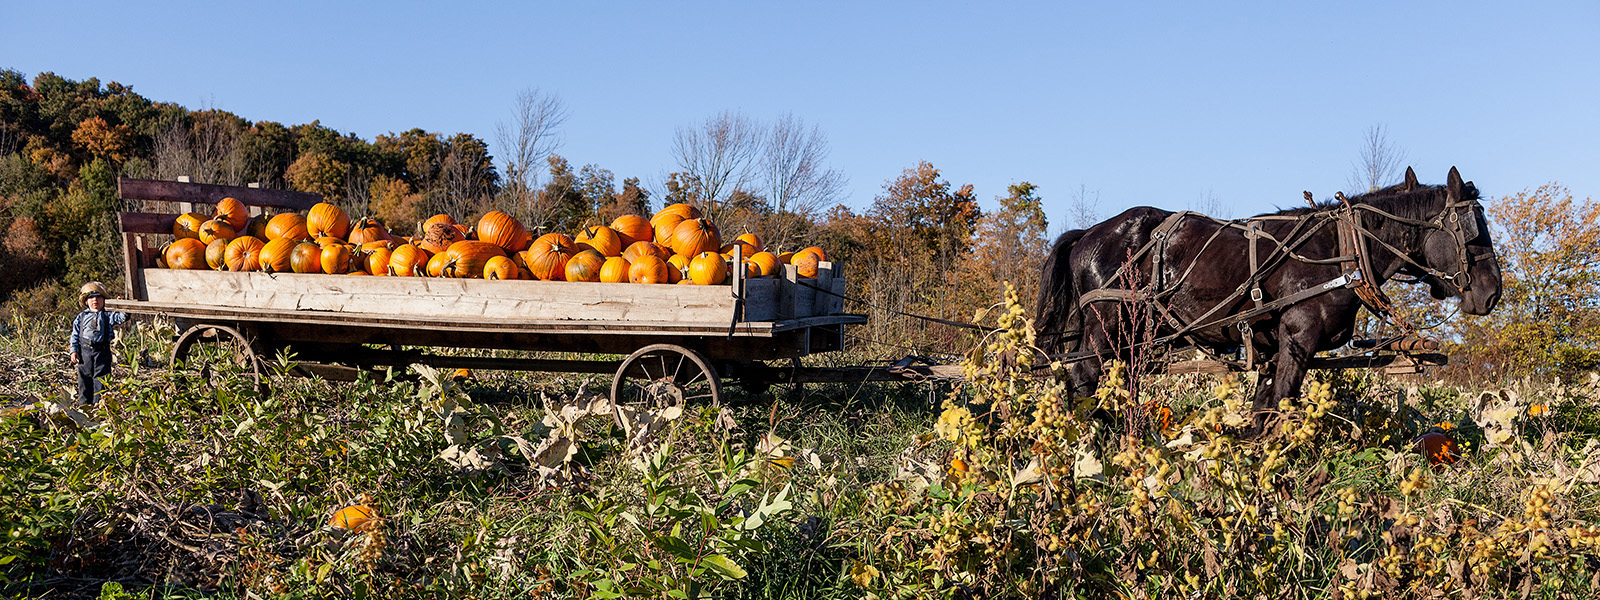 Amish pumpkin harvesting